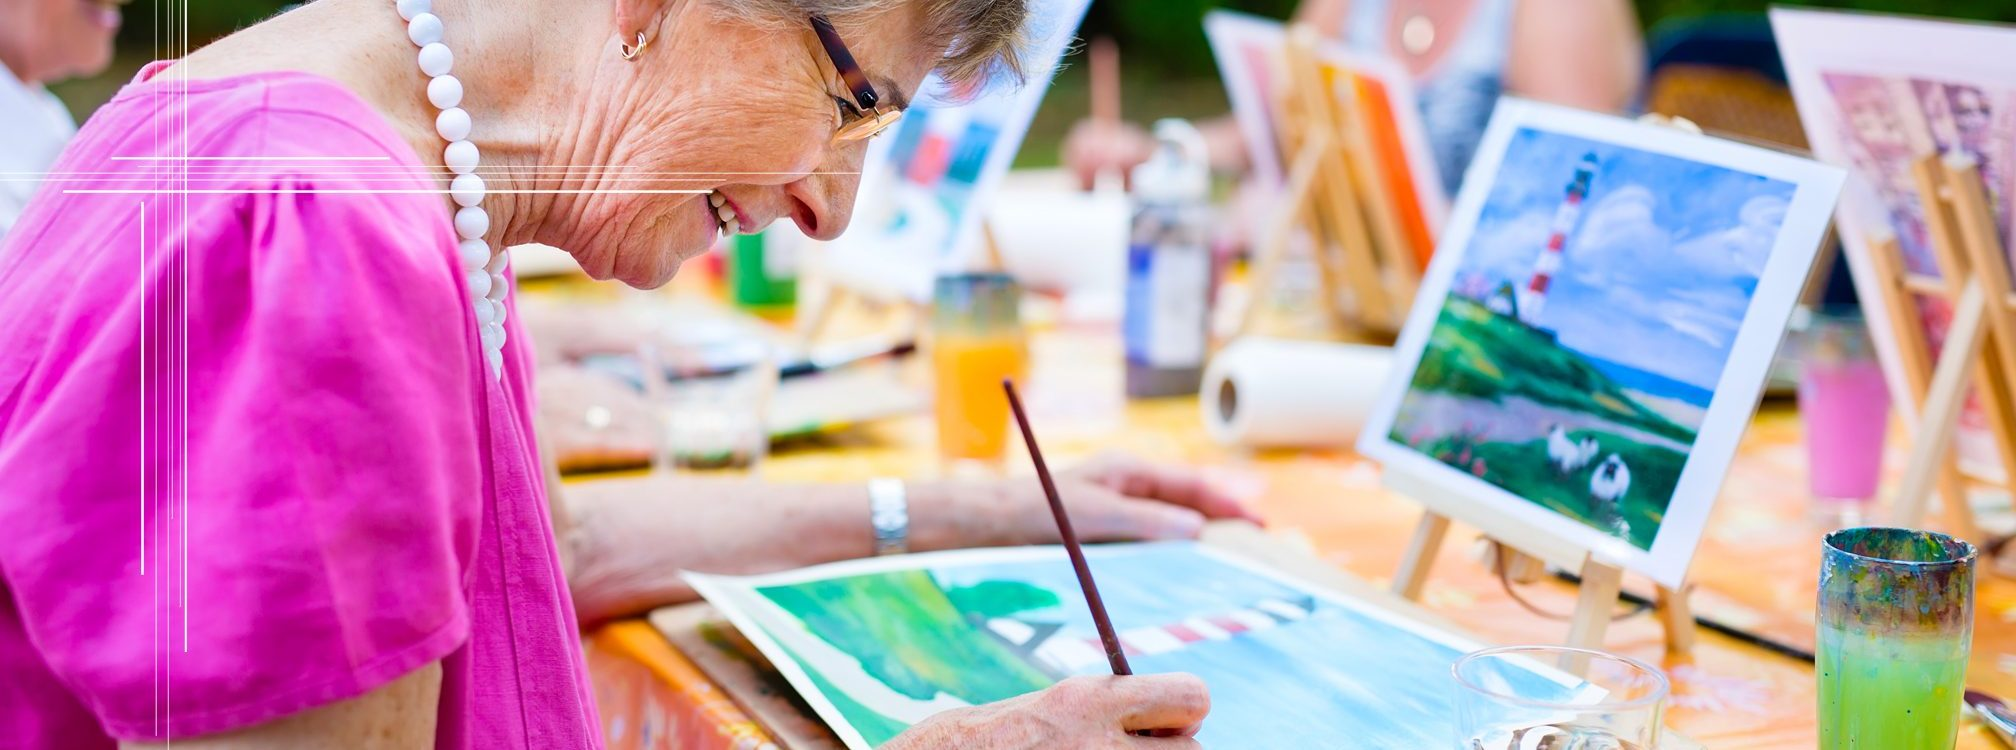 Woman painting a landscape scene at an assisted living facility.